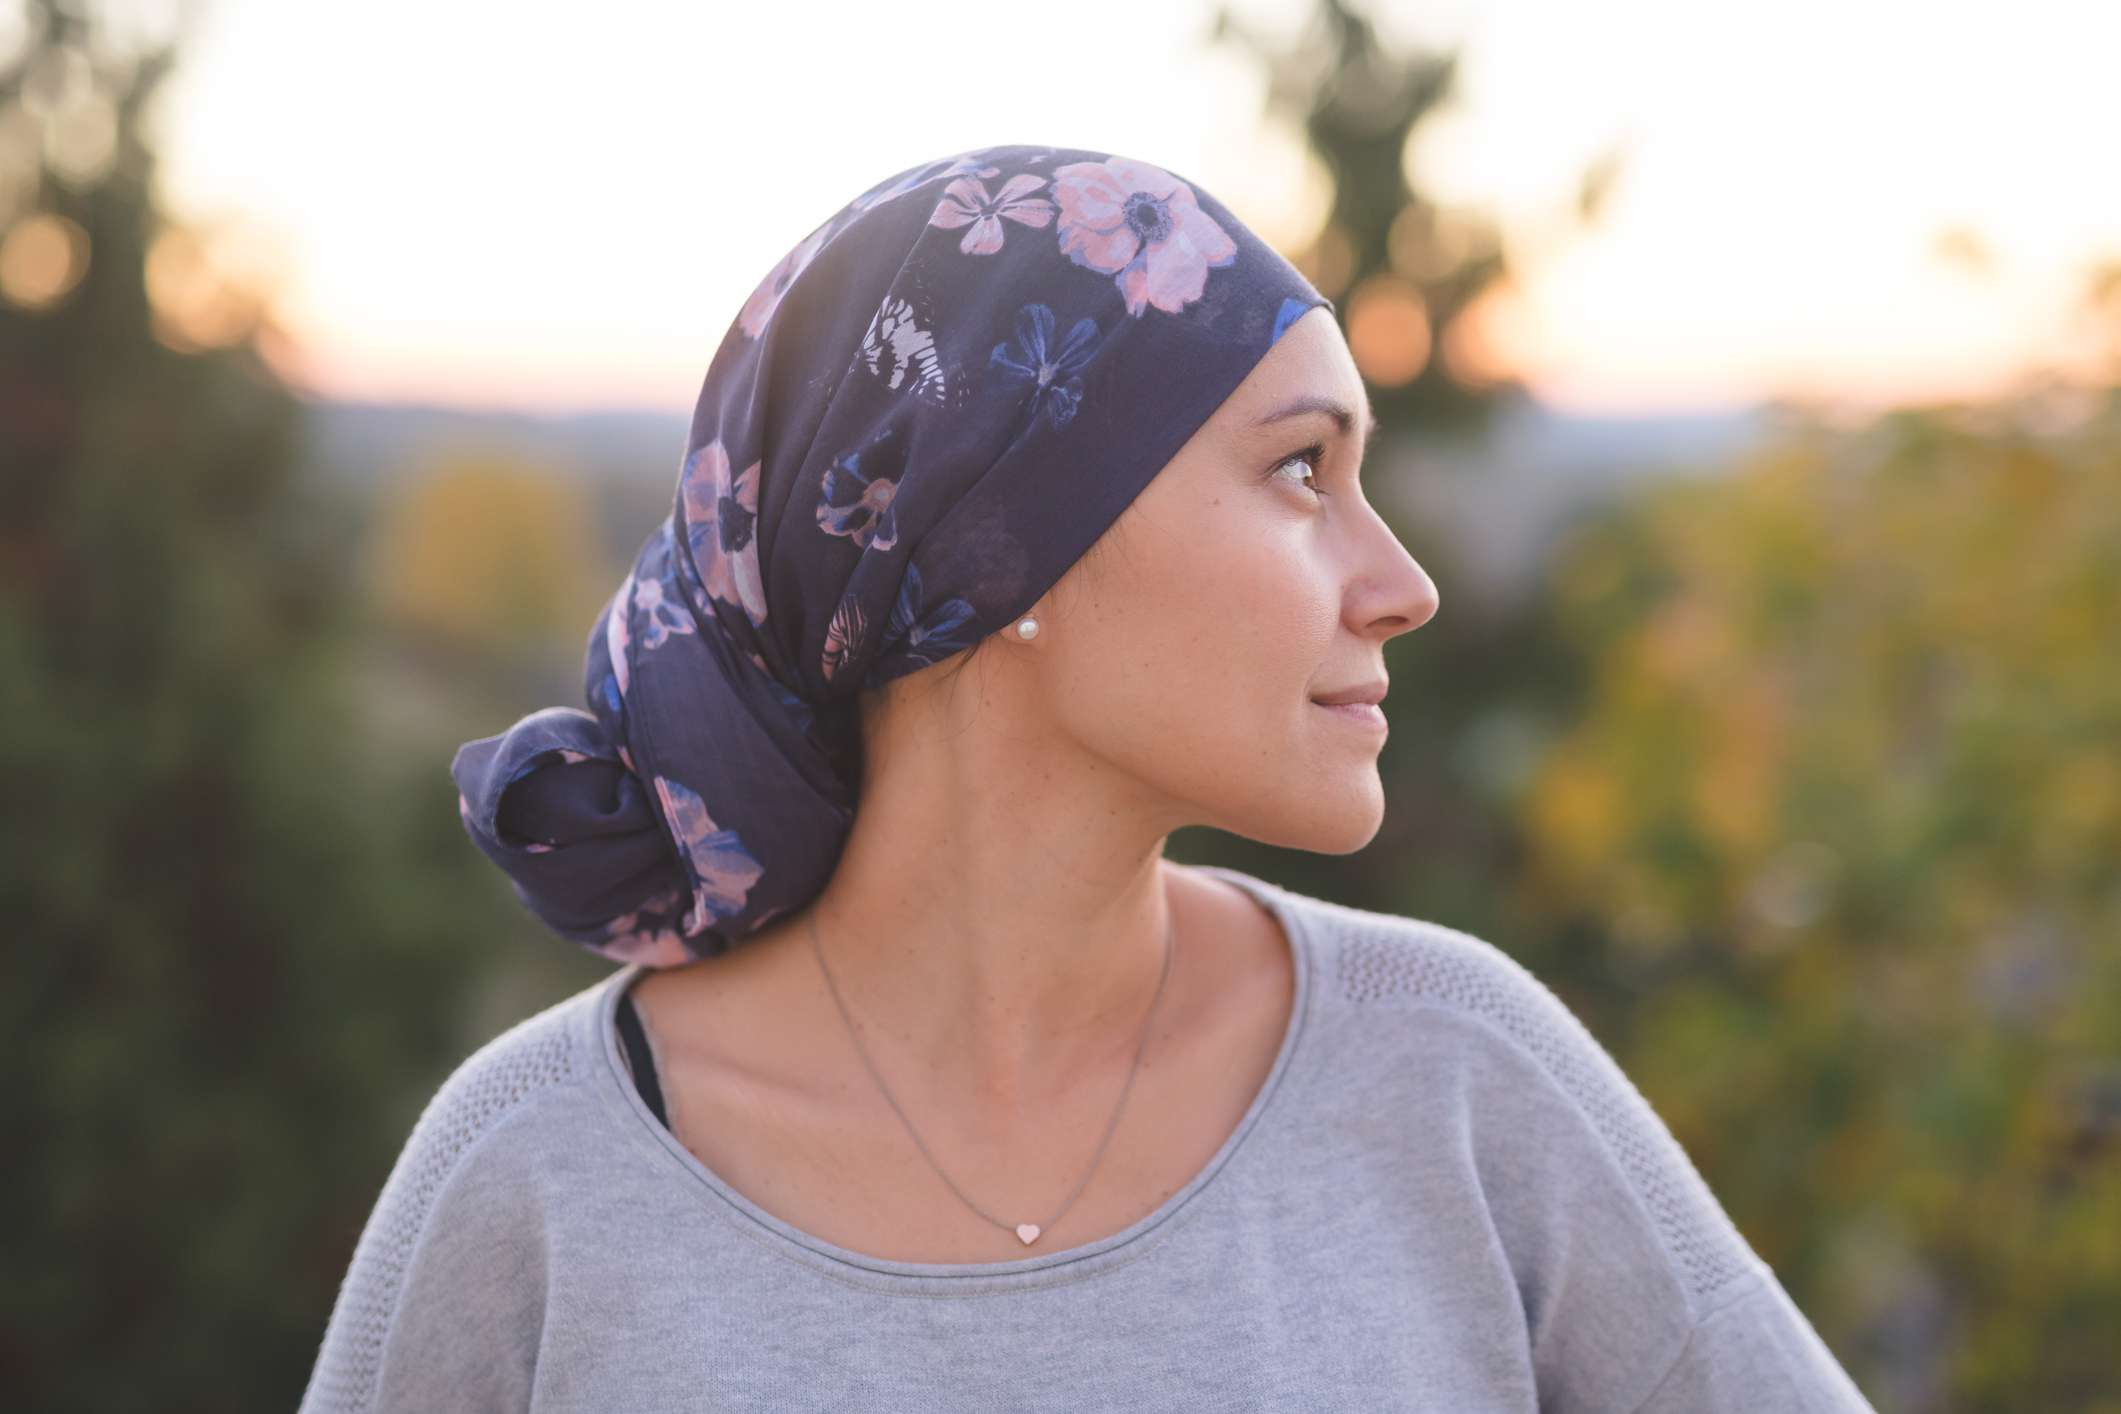 Ethnic woman battling cancer stands outside